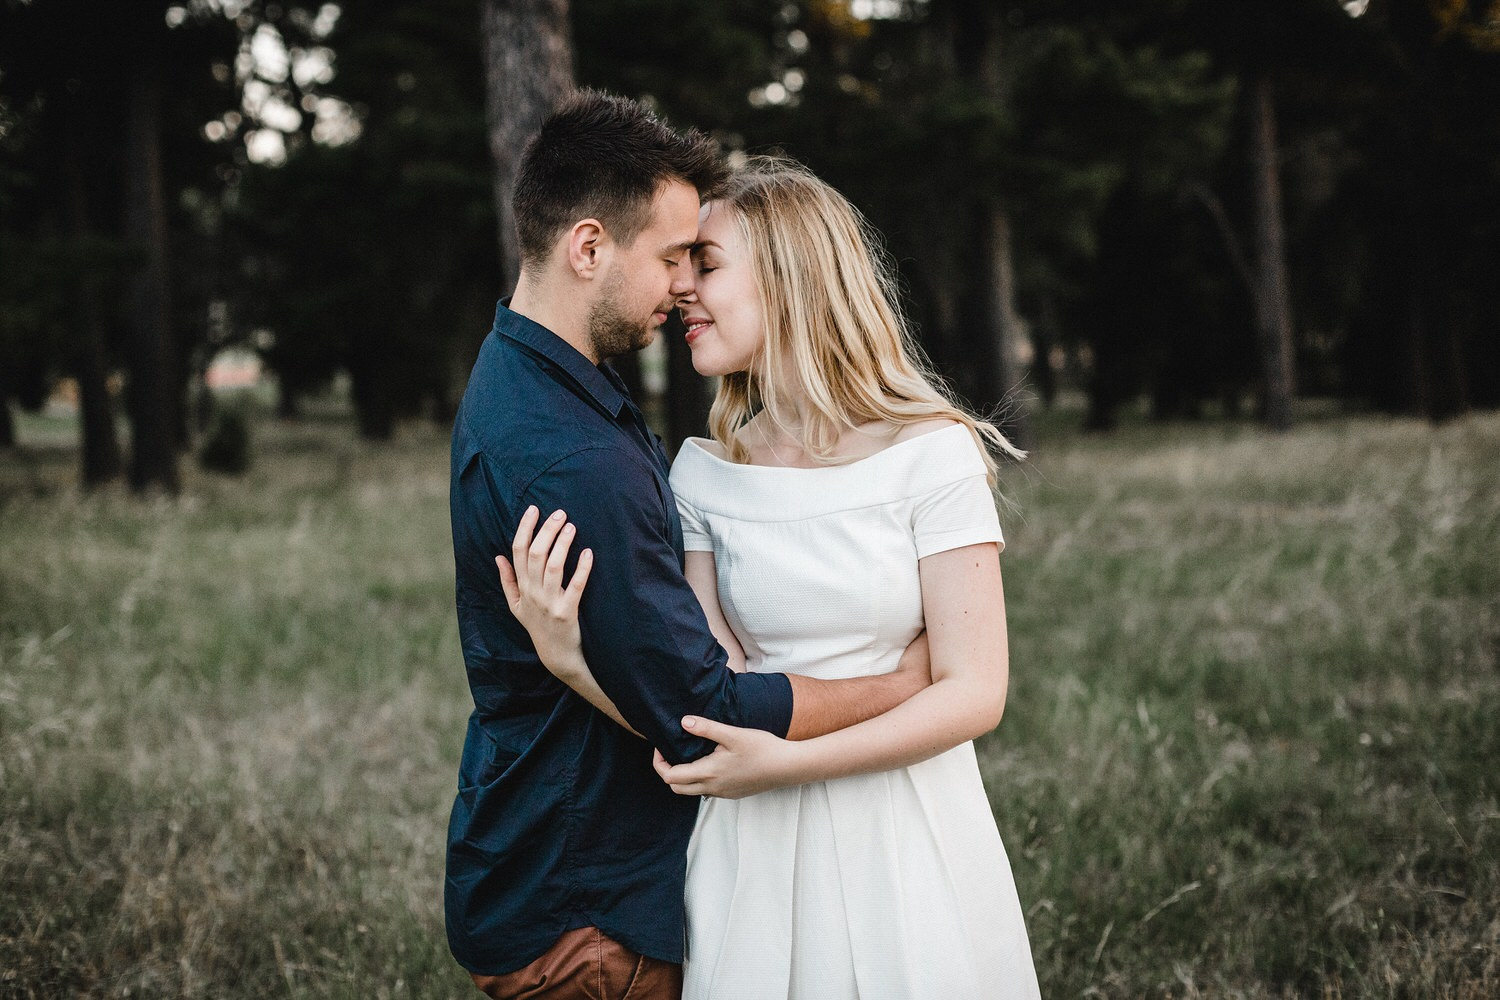 Yarralumla engagement shoot, Weston Park, Moody, Romantic, Canberra Wedding Photographer, Bowral Wedding Photographer, Sunshine Coast Wedding Photographer, Canberra Wedding Photography